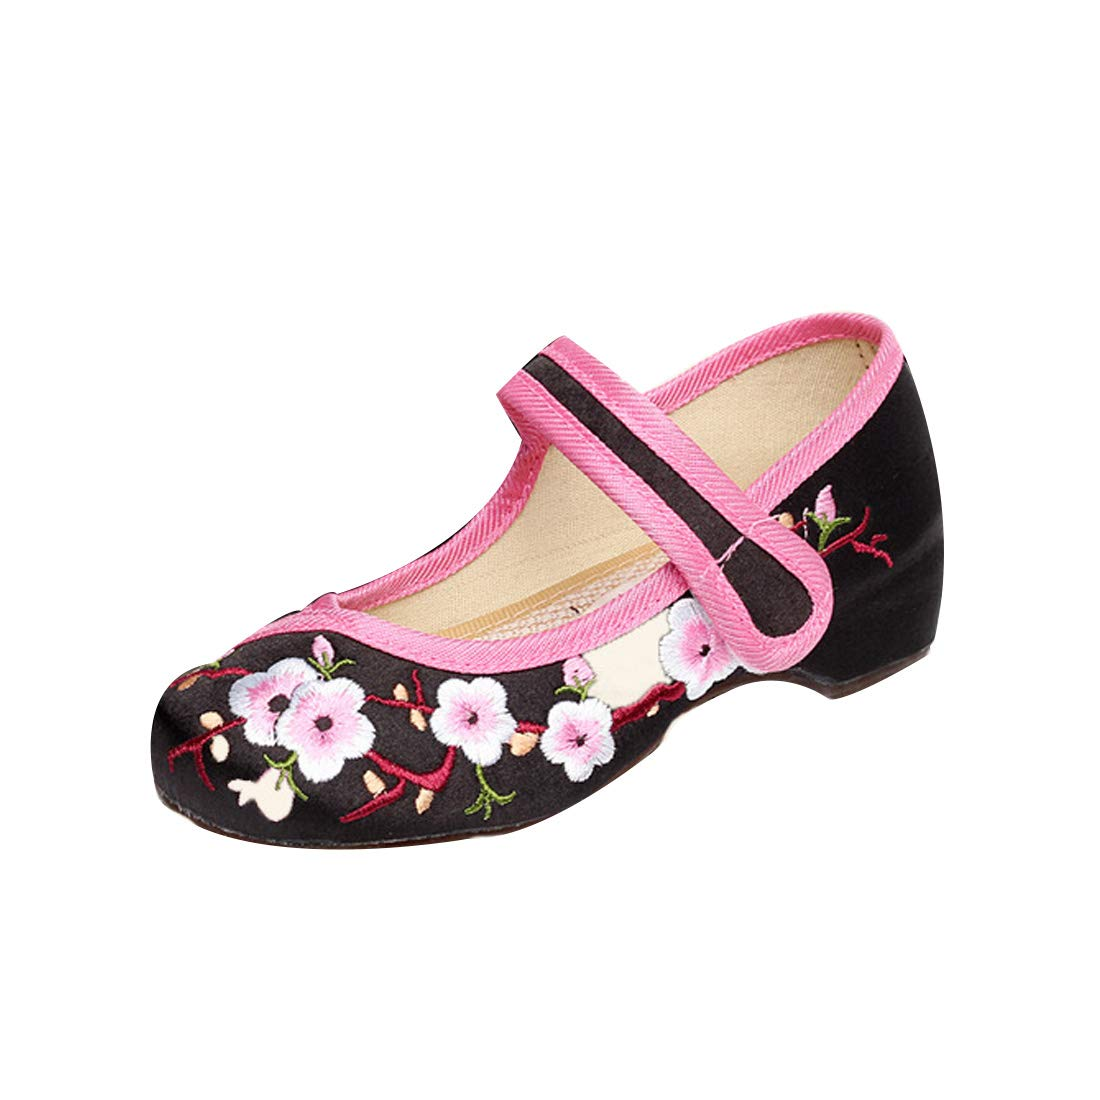 Aiweijia Girls Embroidered Shoes Low Top Increased Dance Solid Color Shoes